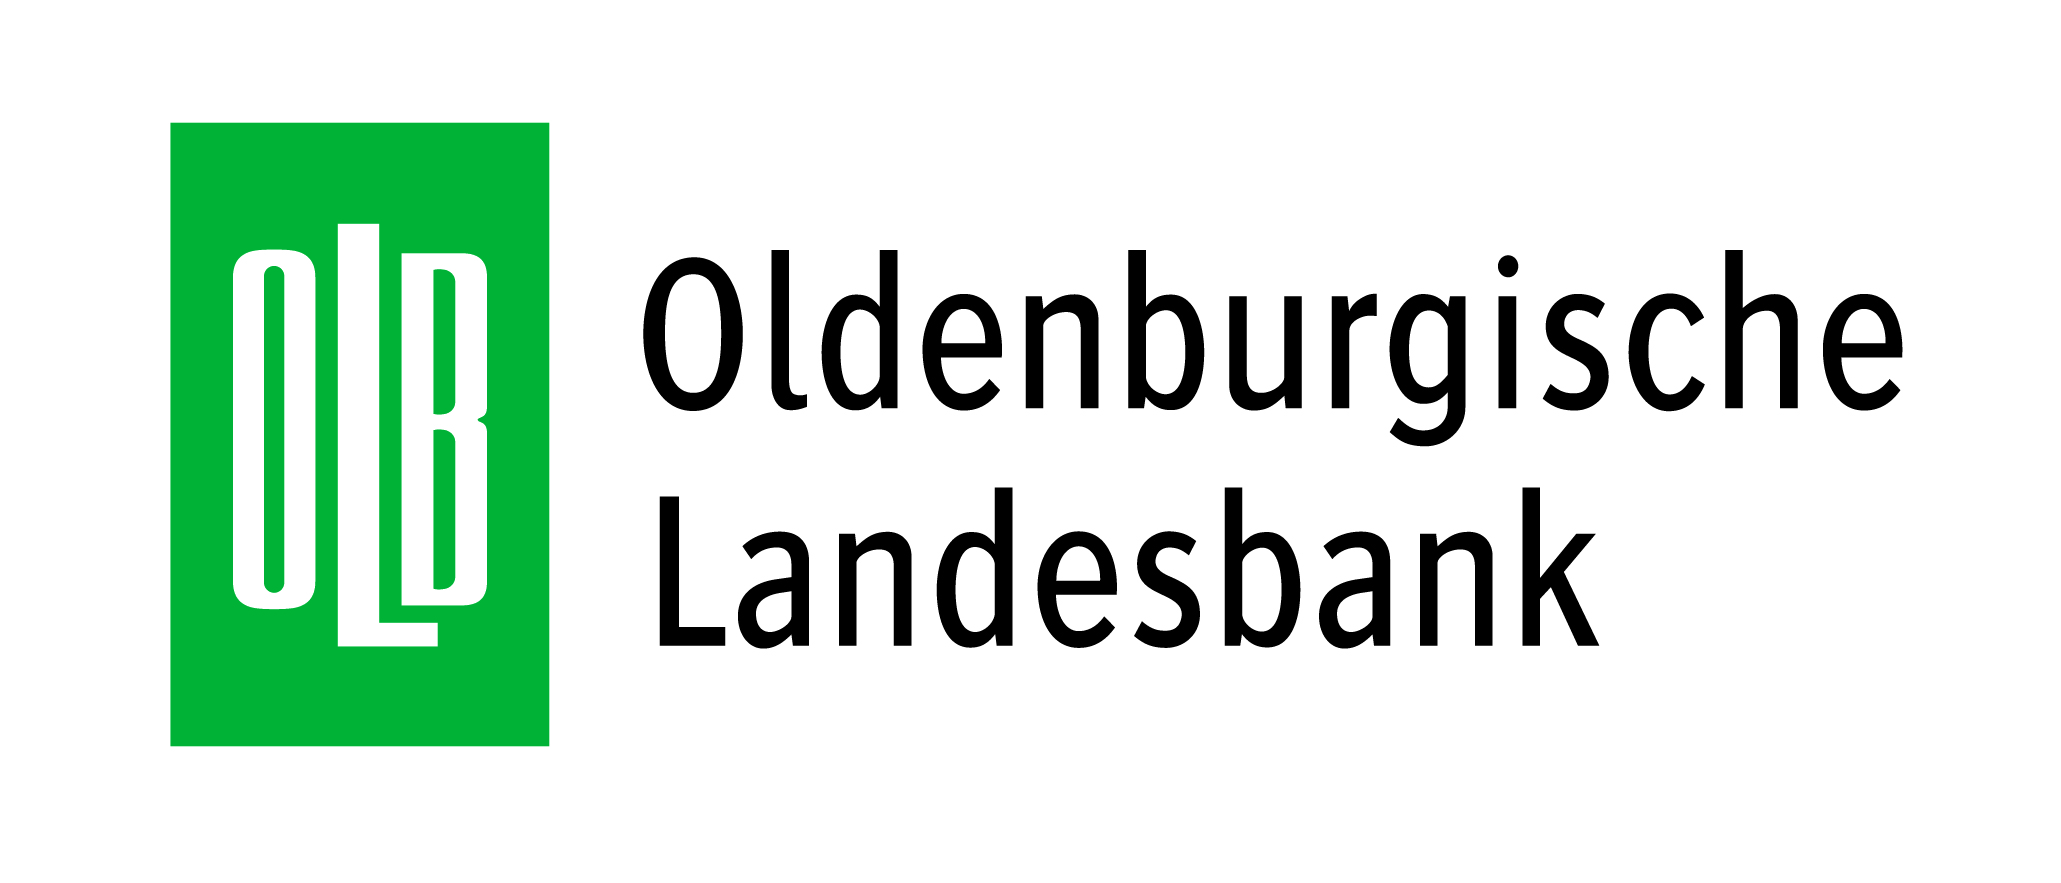 Oldenburgische Landesbank